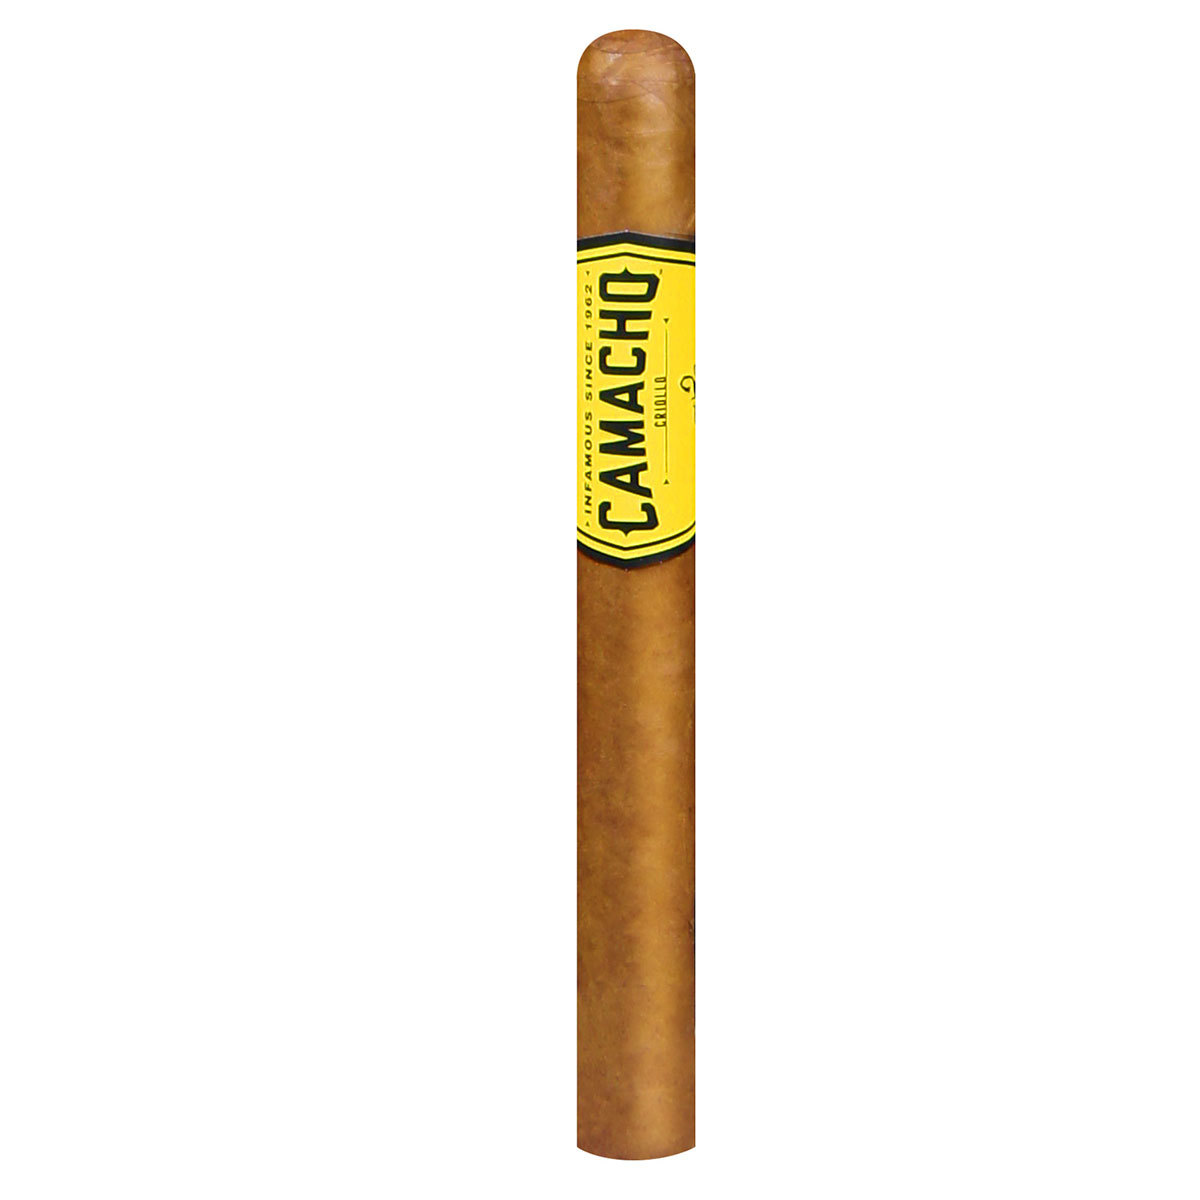 Camacho Criollo Churchill Single